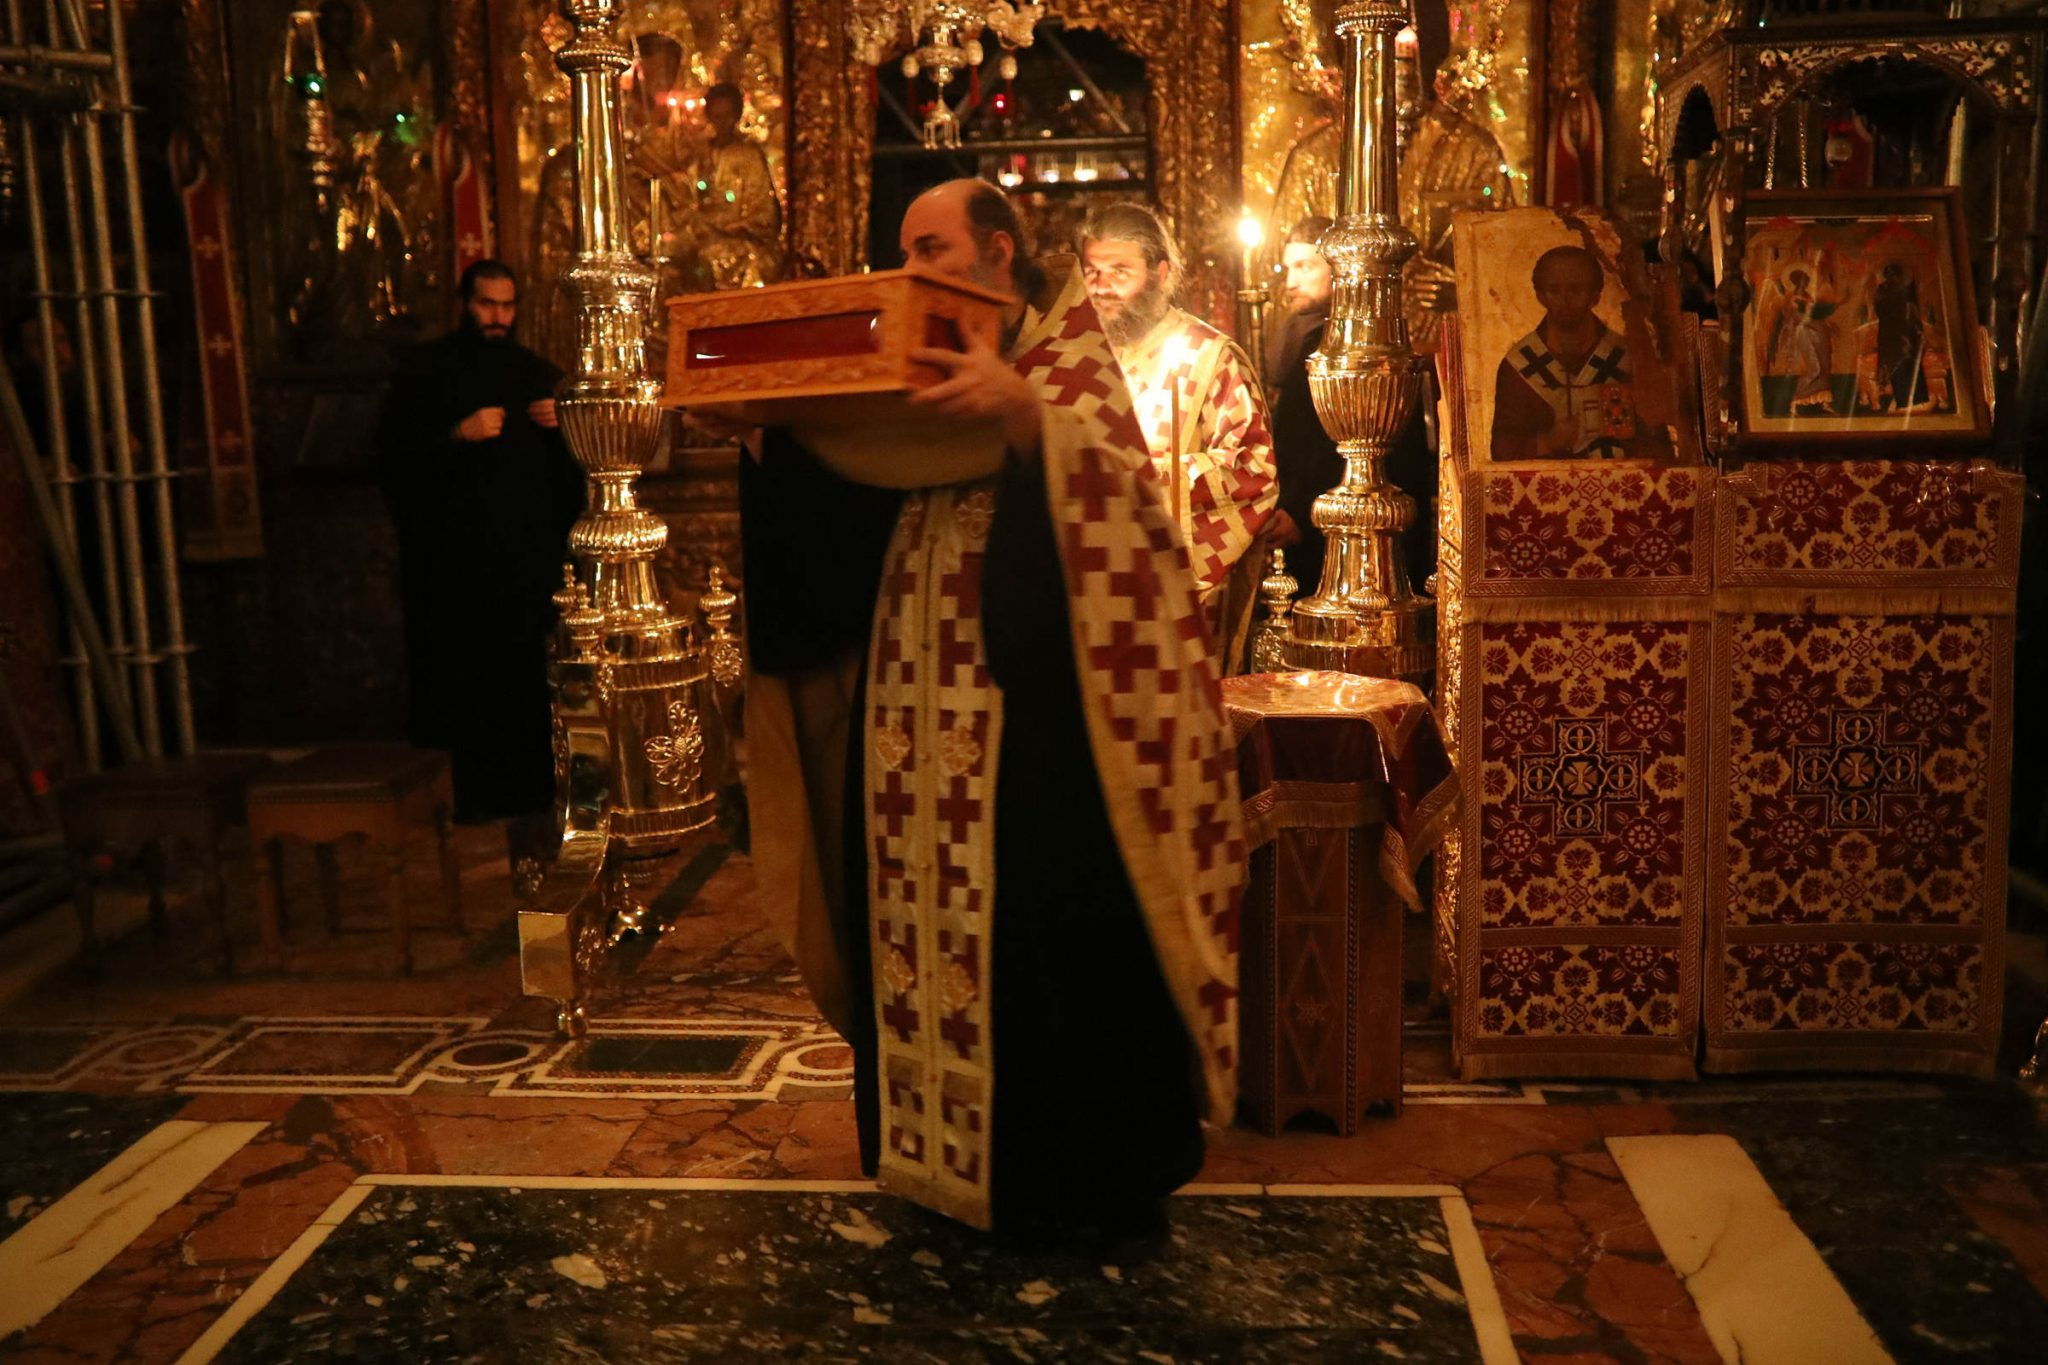 Saint Arsenios Boca, Paisios, Porphyrios: Who is saint? - Photo Journal from the feast of Saint John Chrysostom